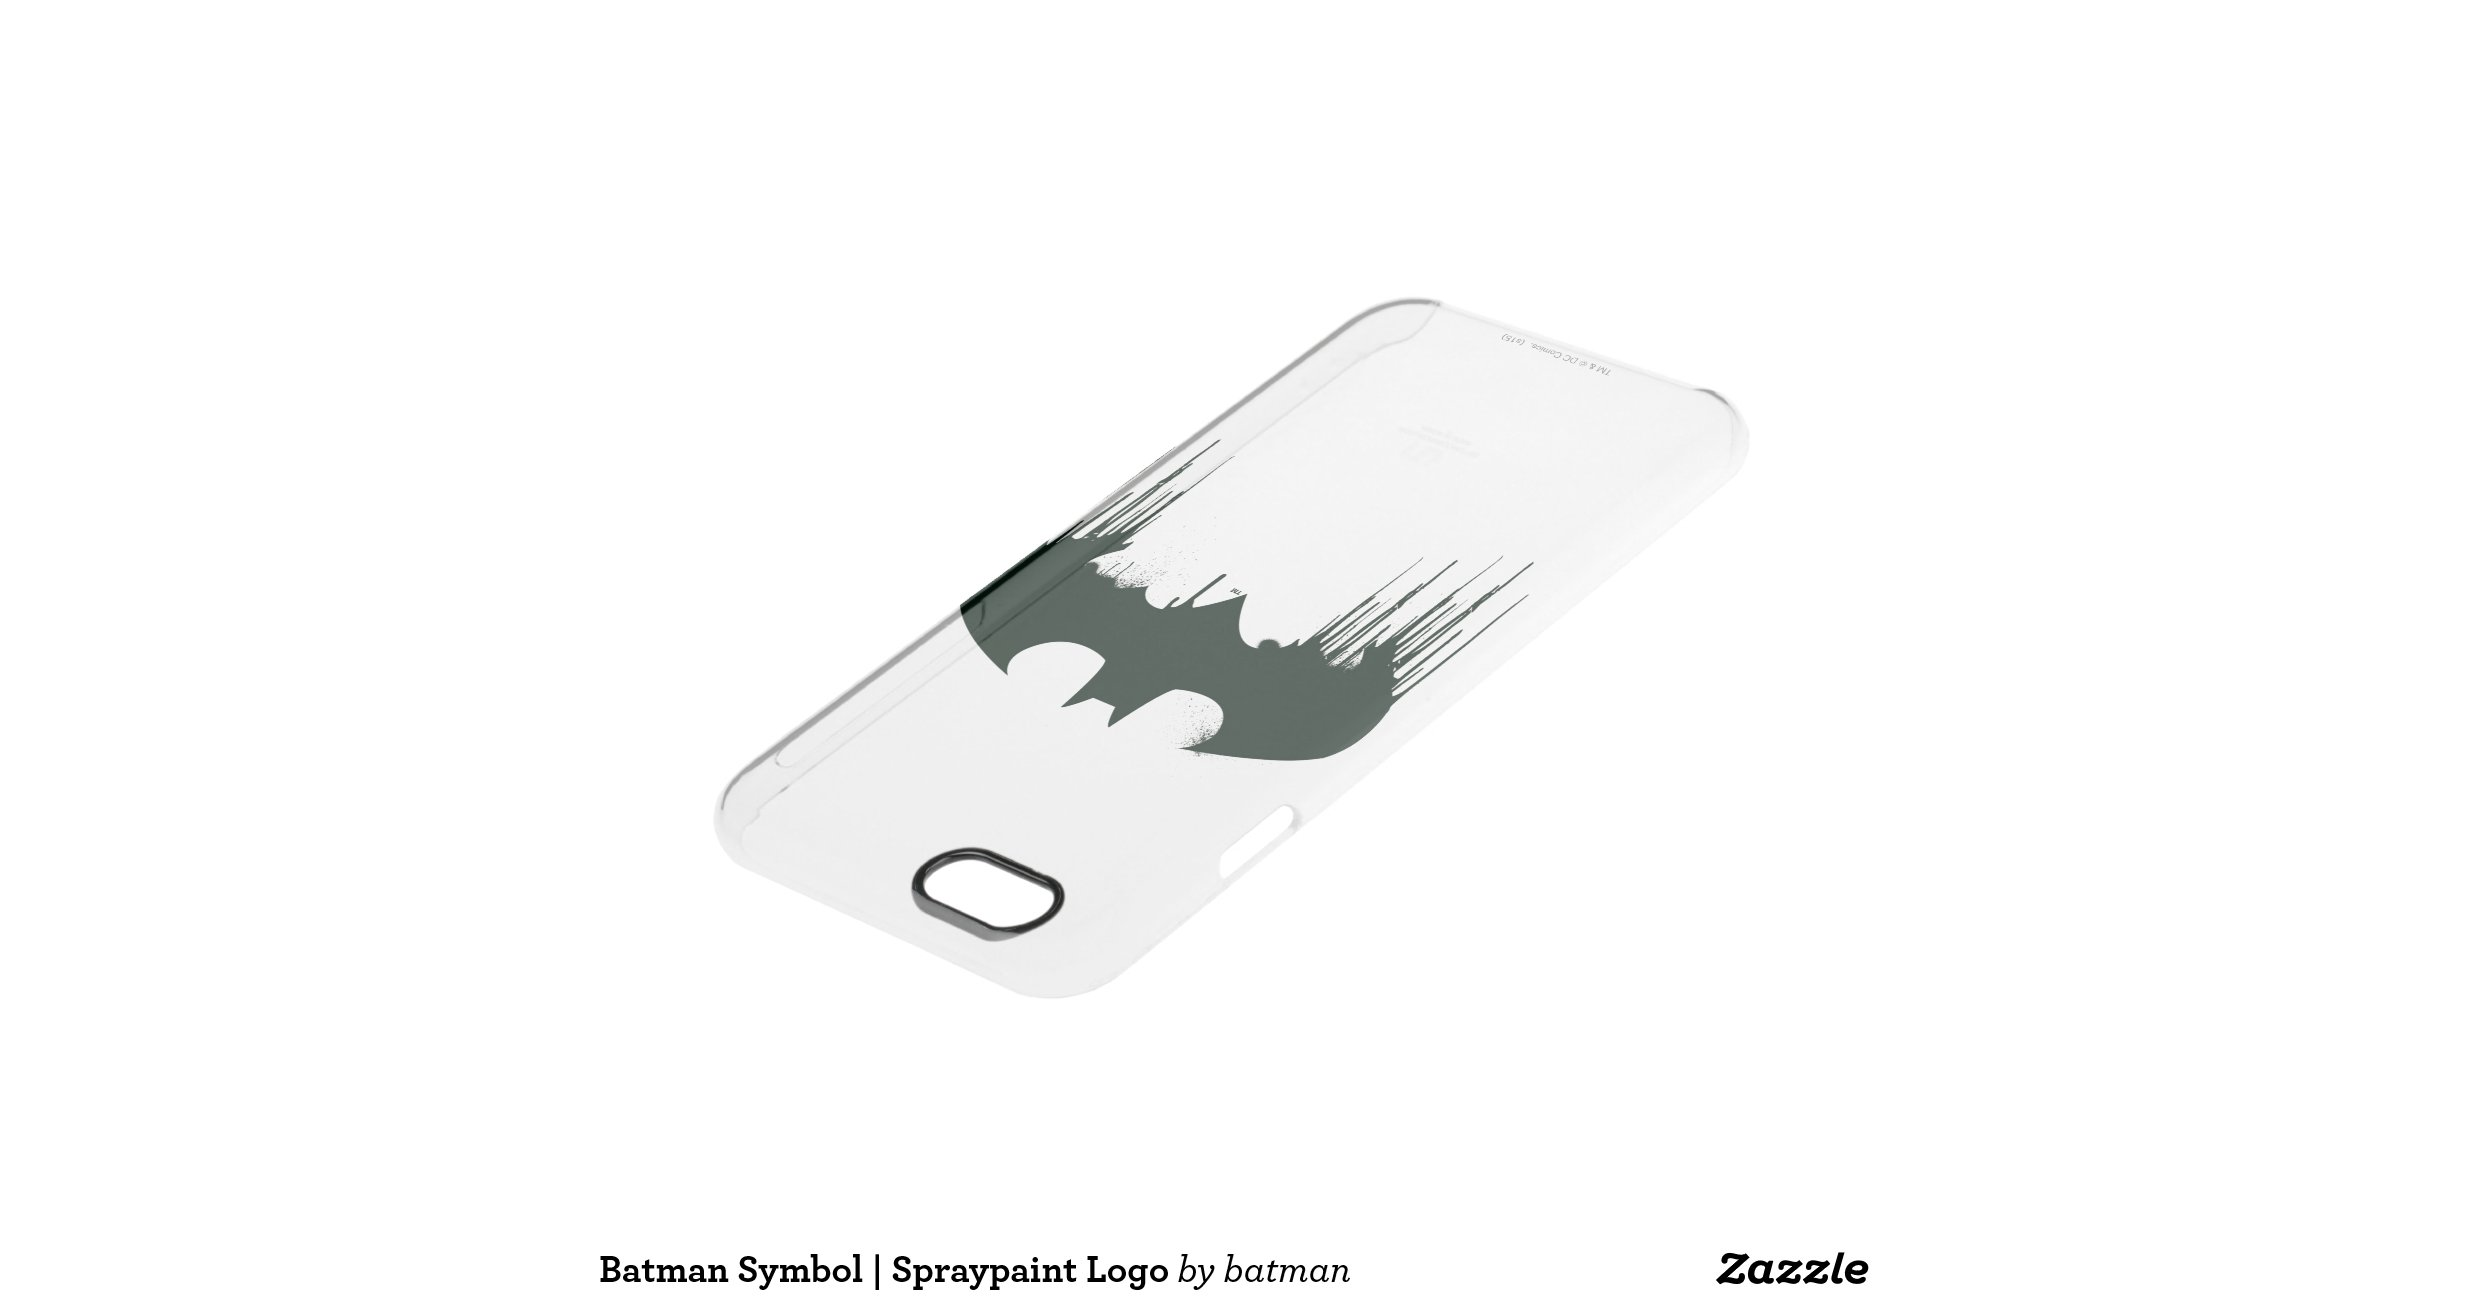 Bat symbol batman logo spraypaint uncommon clearly for Spray paint phone case